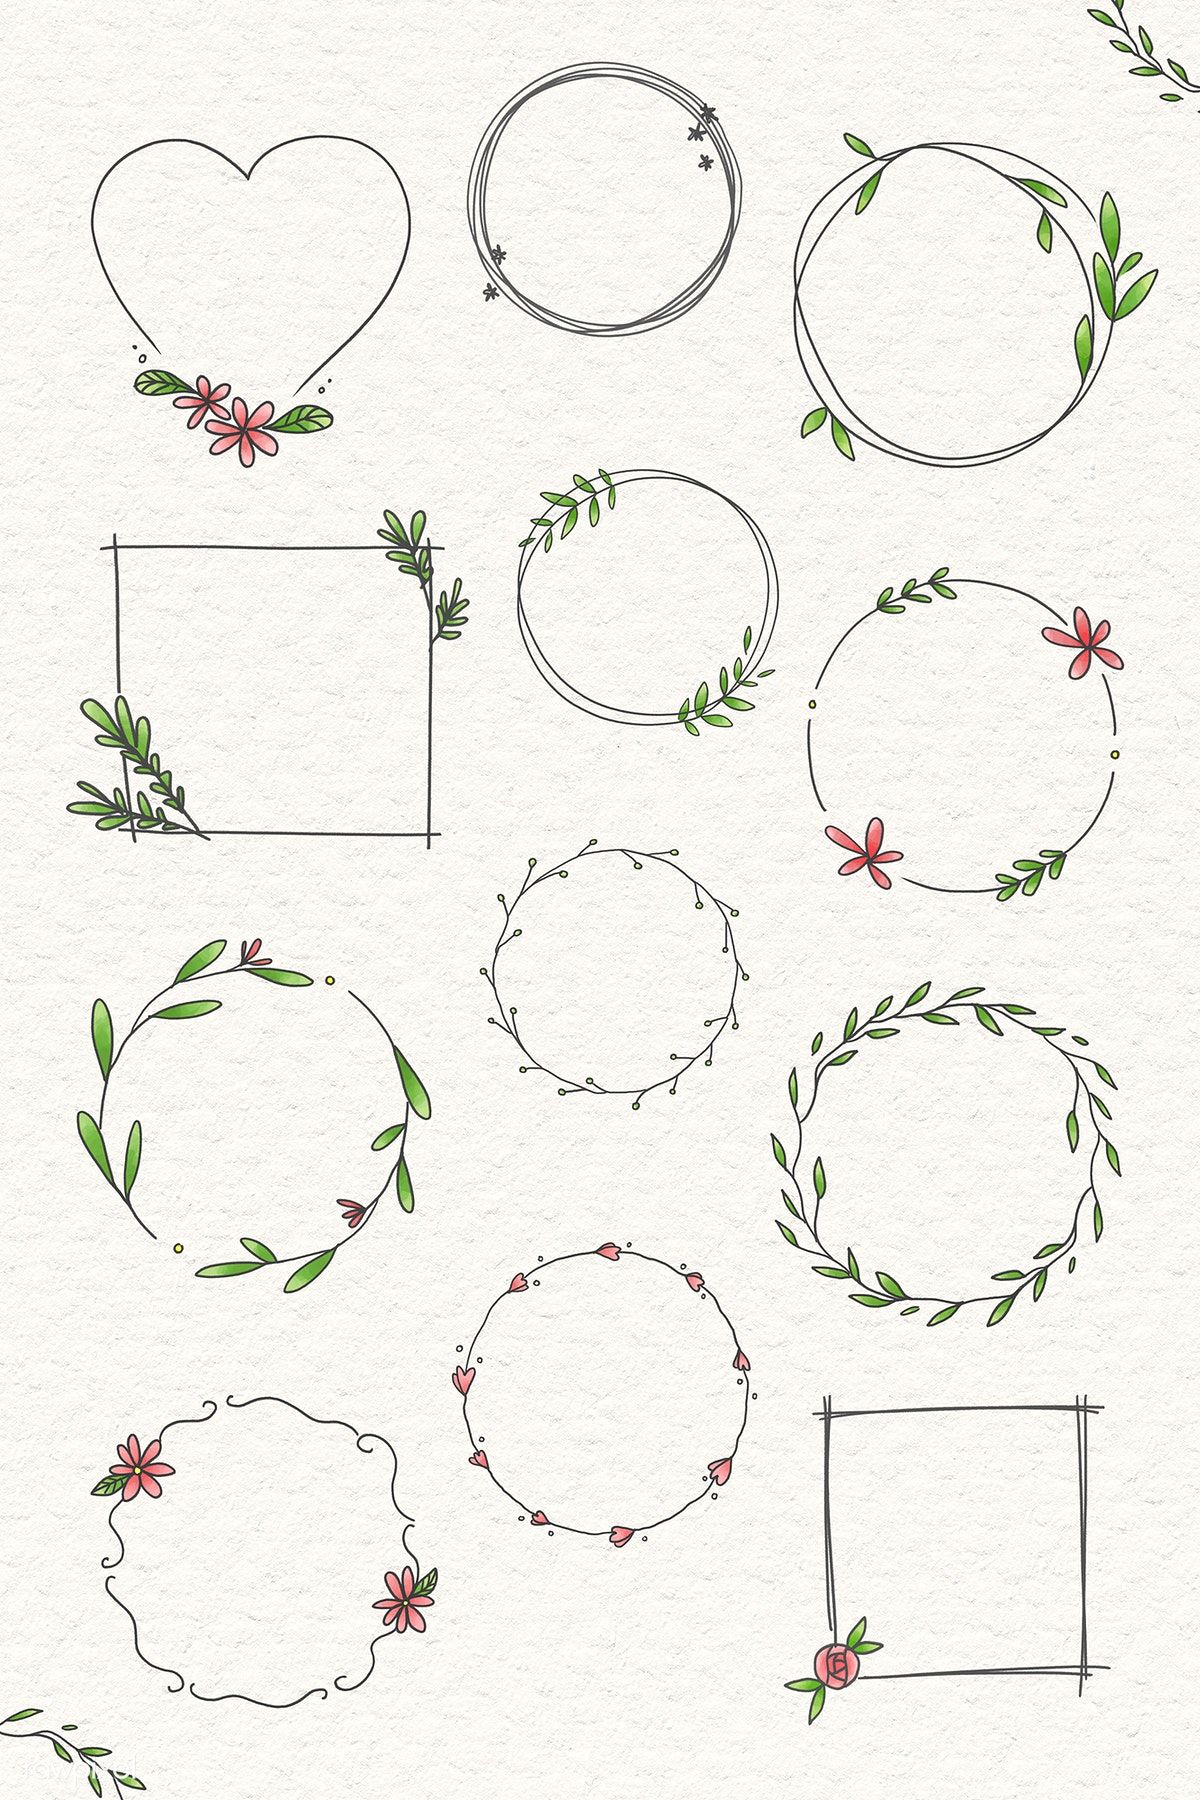 Photo of Download the premium illustration of the doodle floral wreath on beige